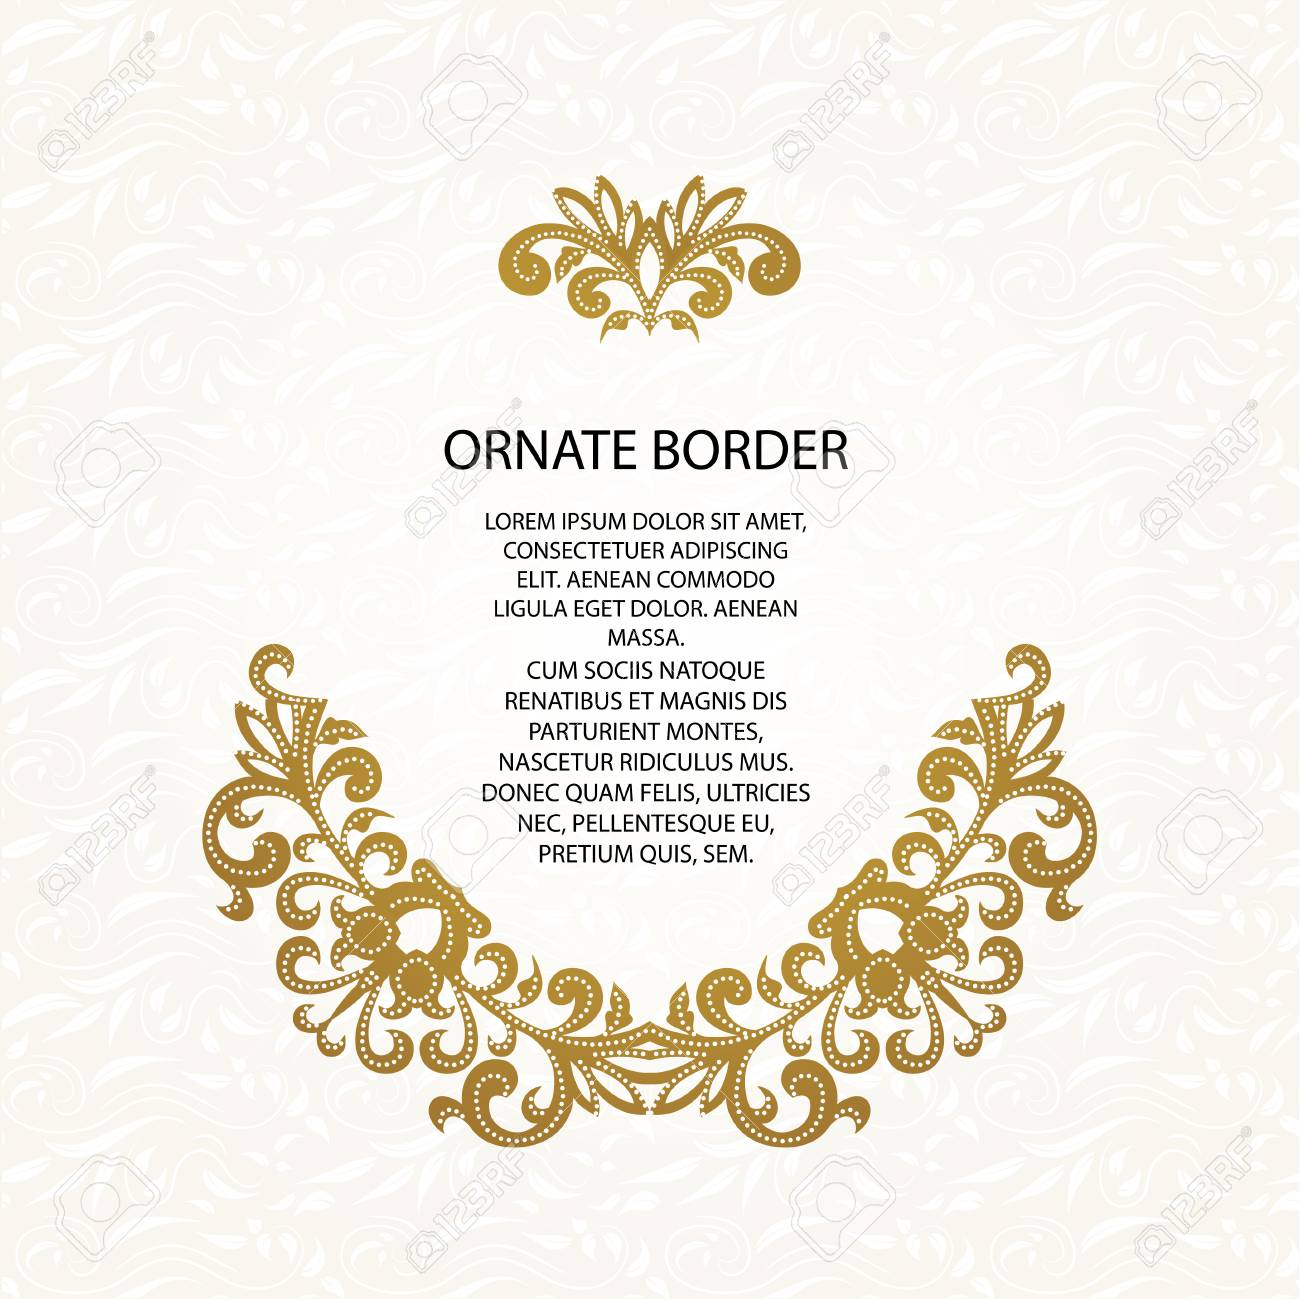 Decorative borders and seamless classic pattern graphic design page banco de imagens decorative borders and seamless classic pattern graphic design page wedding invitation template for greeting cards invitations stopboris Gallery